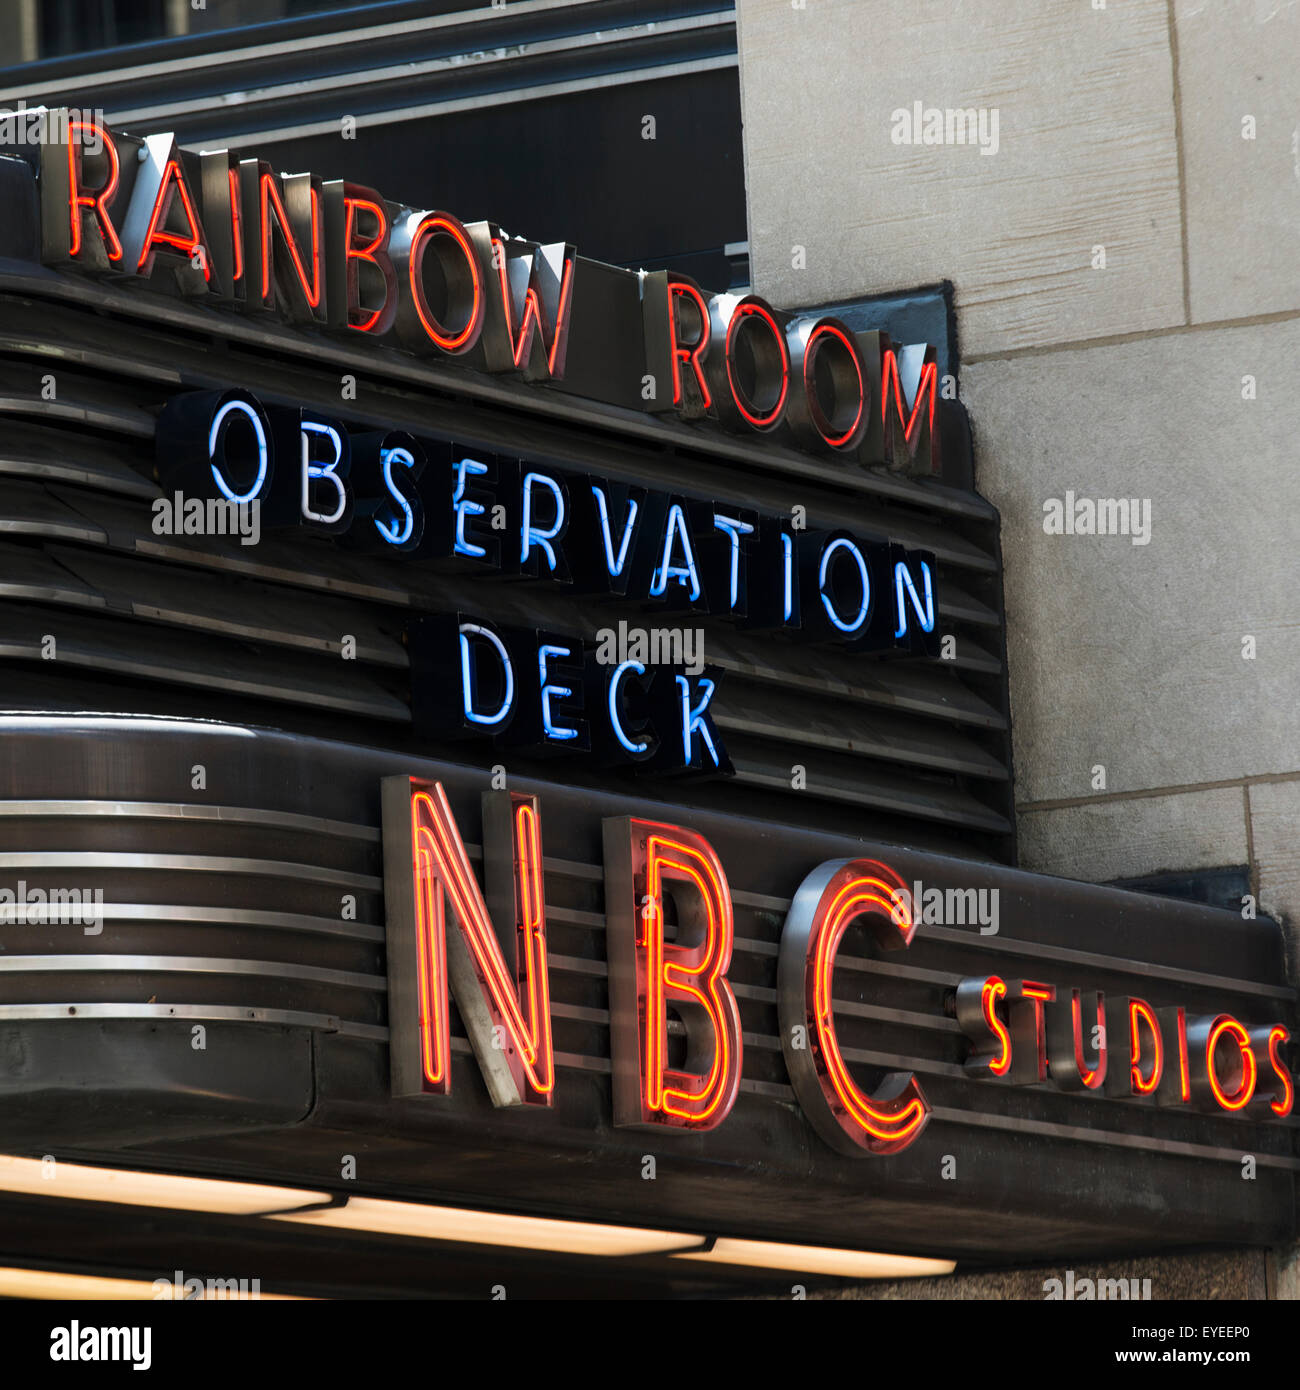 Sign for NBC Studios Rainbow Room observation deck; New York City, New York, United States of America - Stock Image